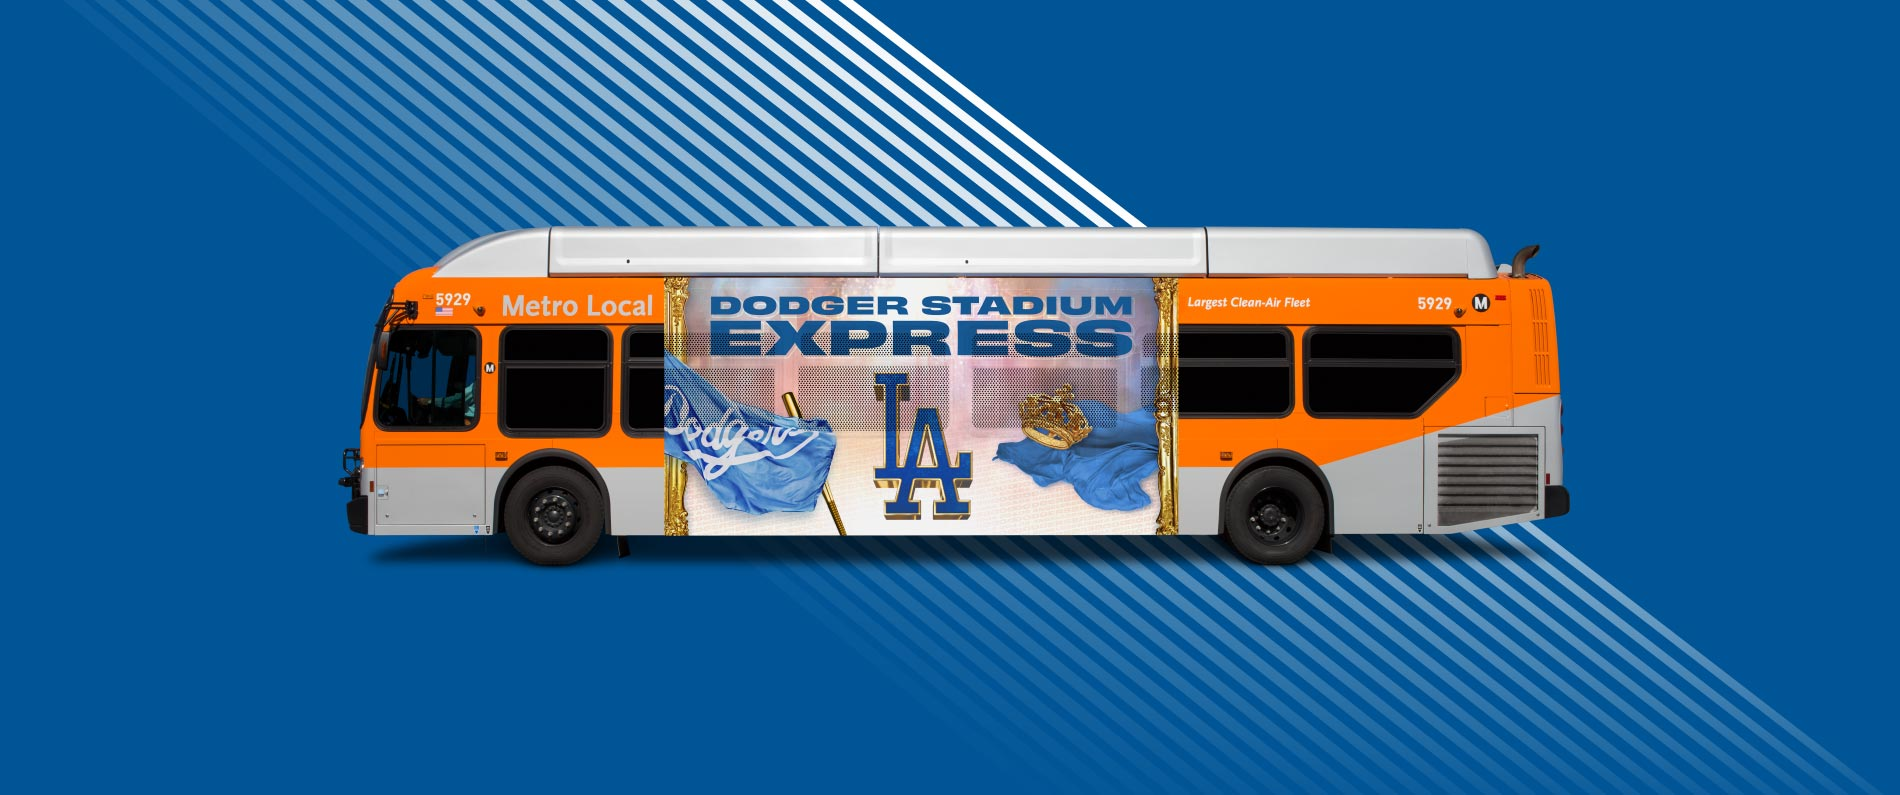 Side view of Dodger Stadium Express bus.